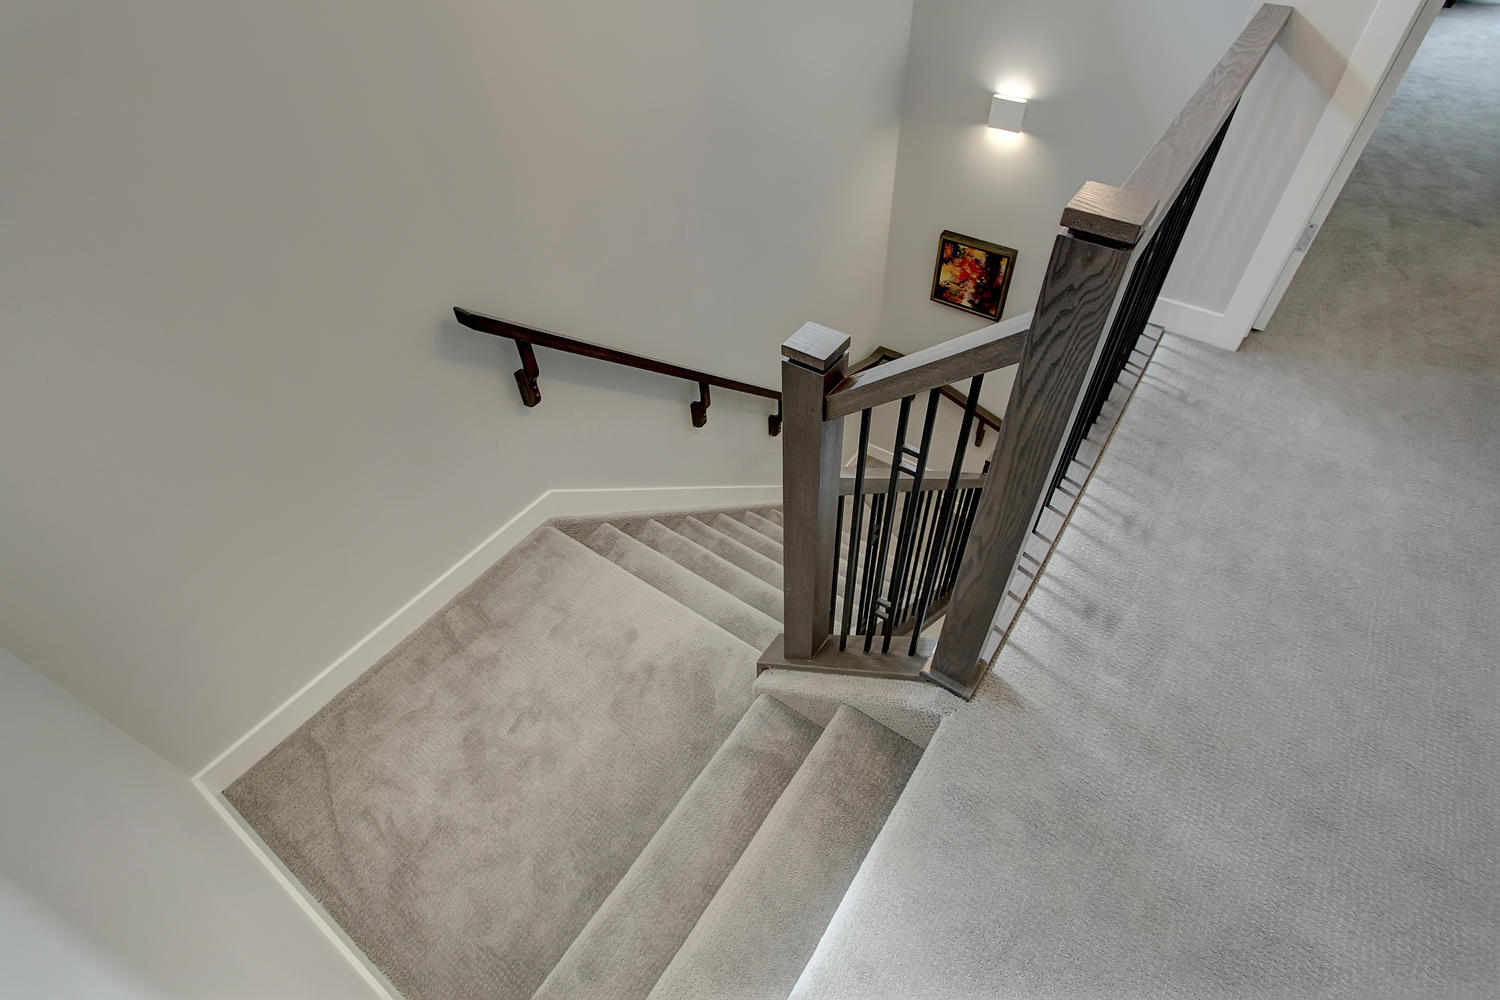 10181 88 St NW-large-033-133-Staircase-1500x1000-72dpi.jpg